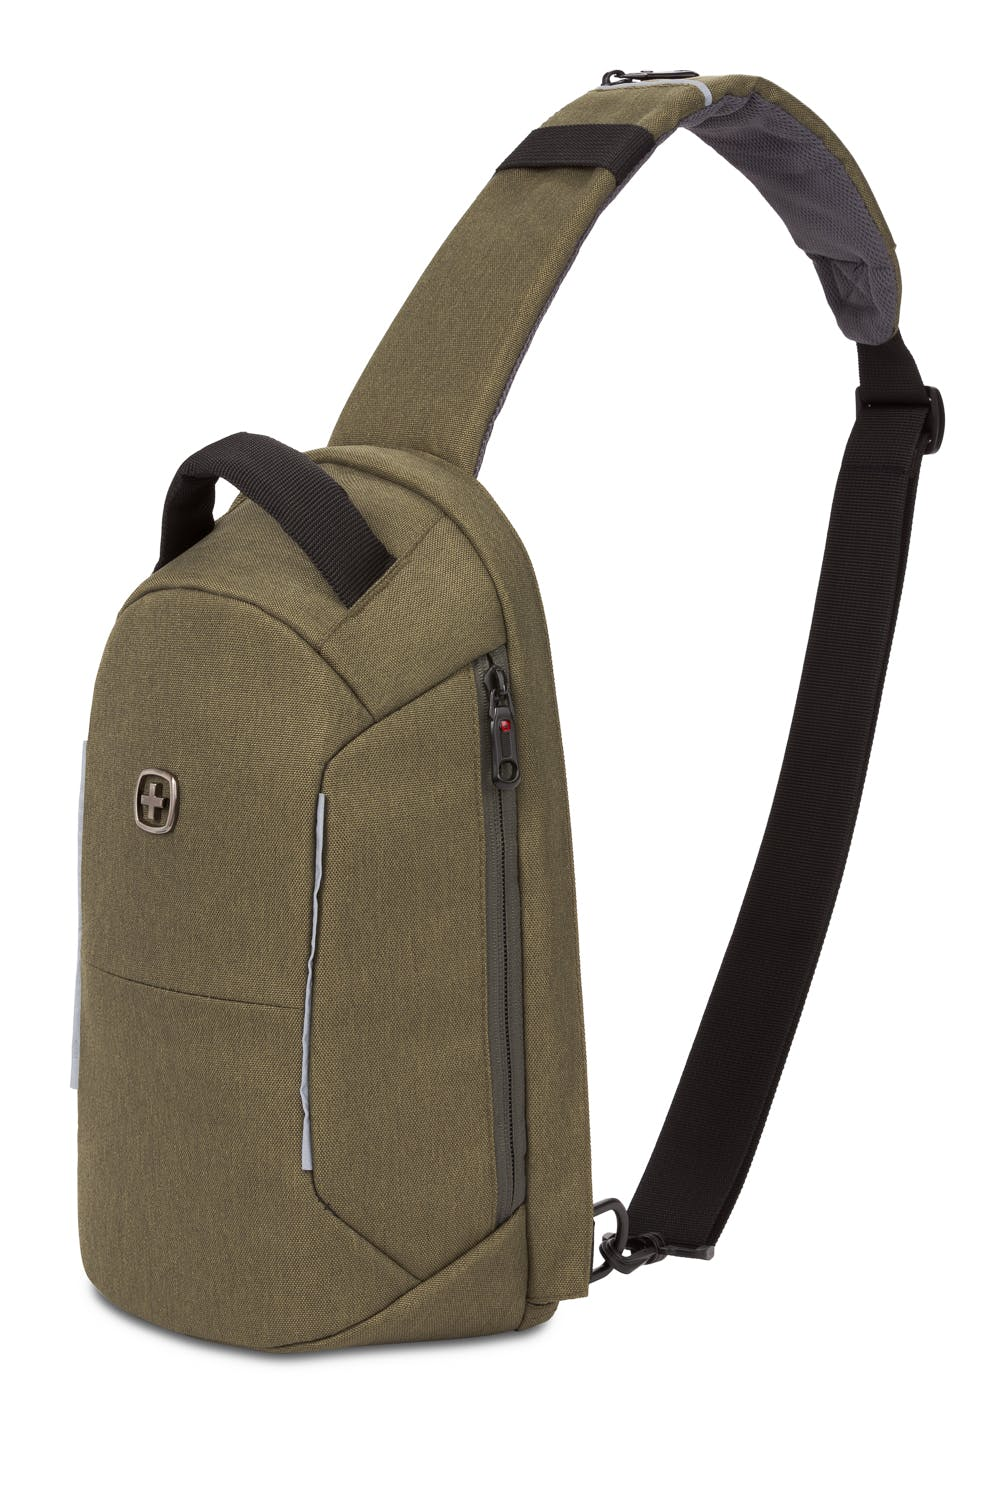 Swissgear 2712 Anti-Theft USB Tablet Sling - Olive Green